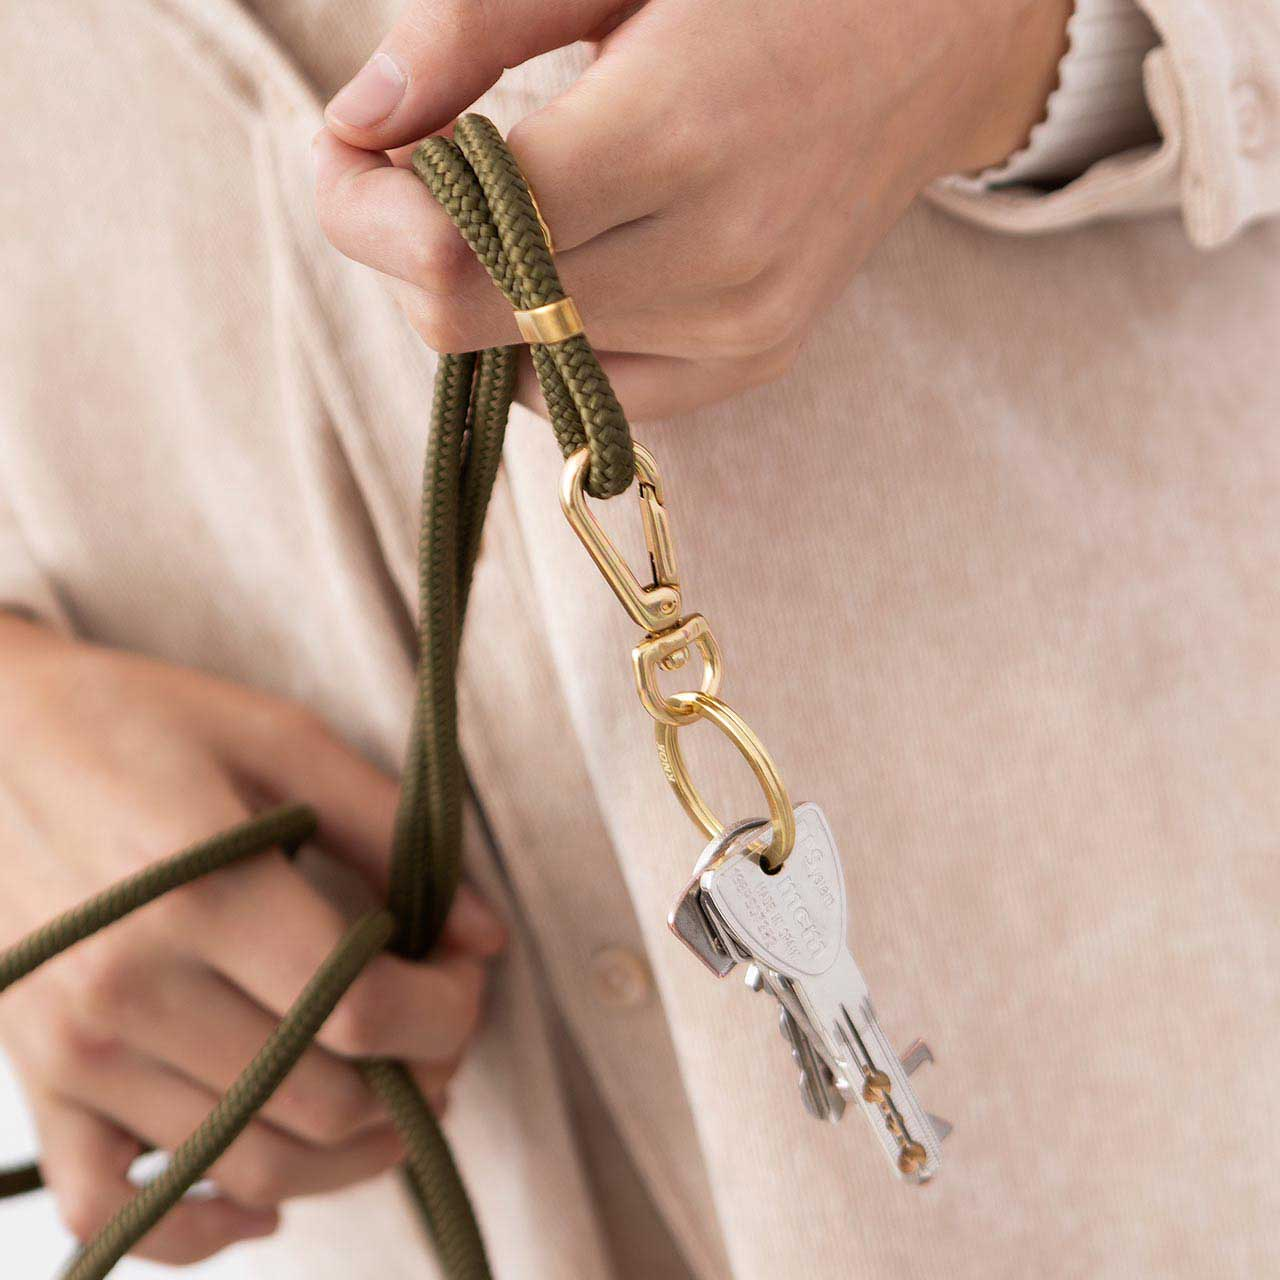 Model holding keys on a KNOK Key Holder in olive green